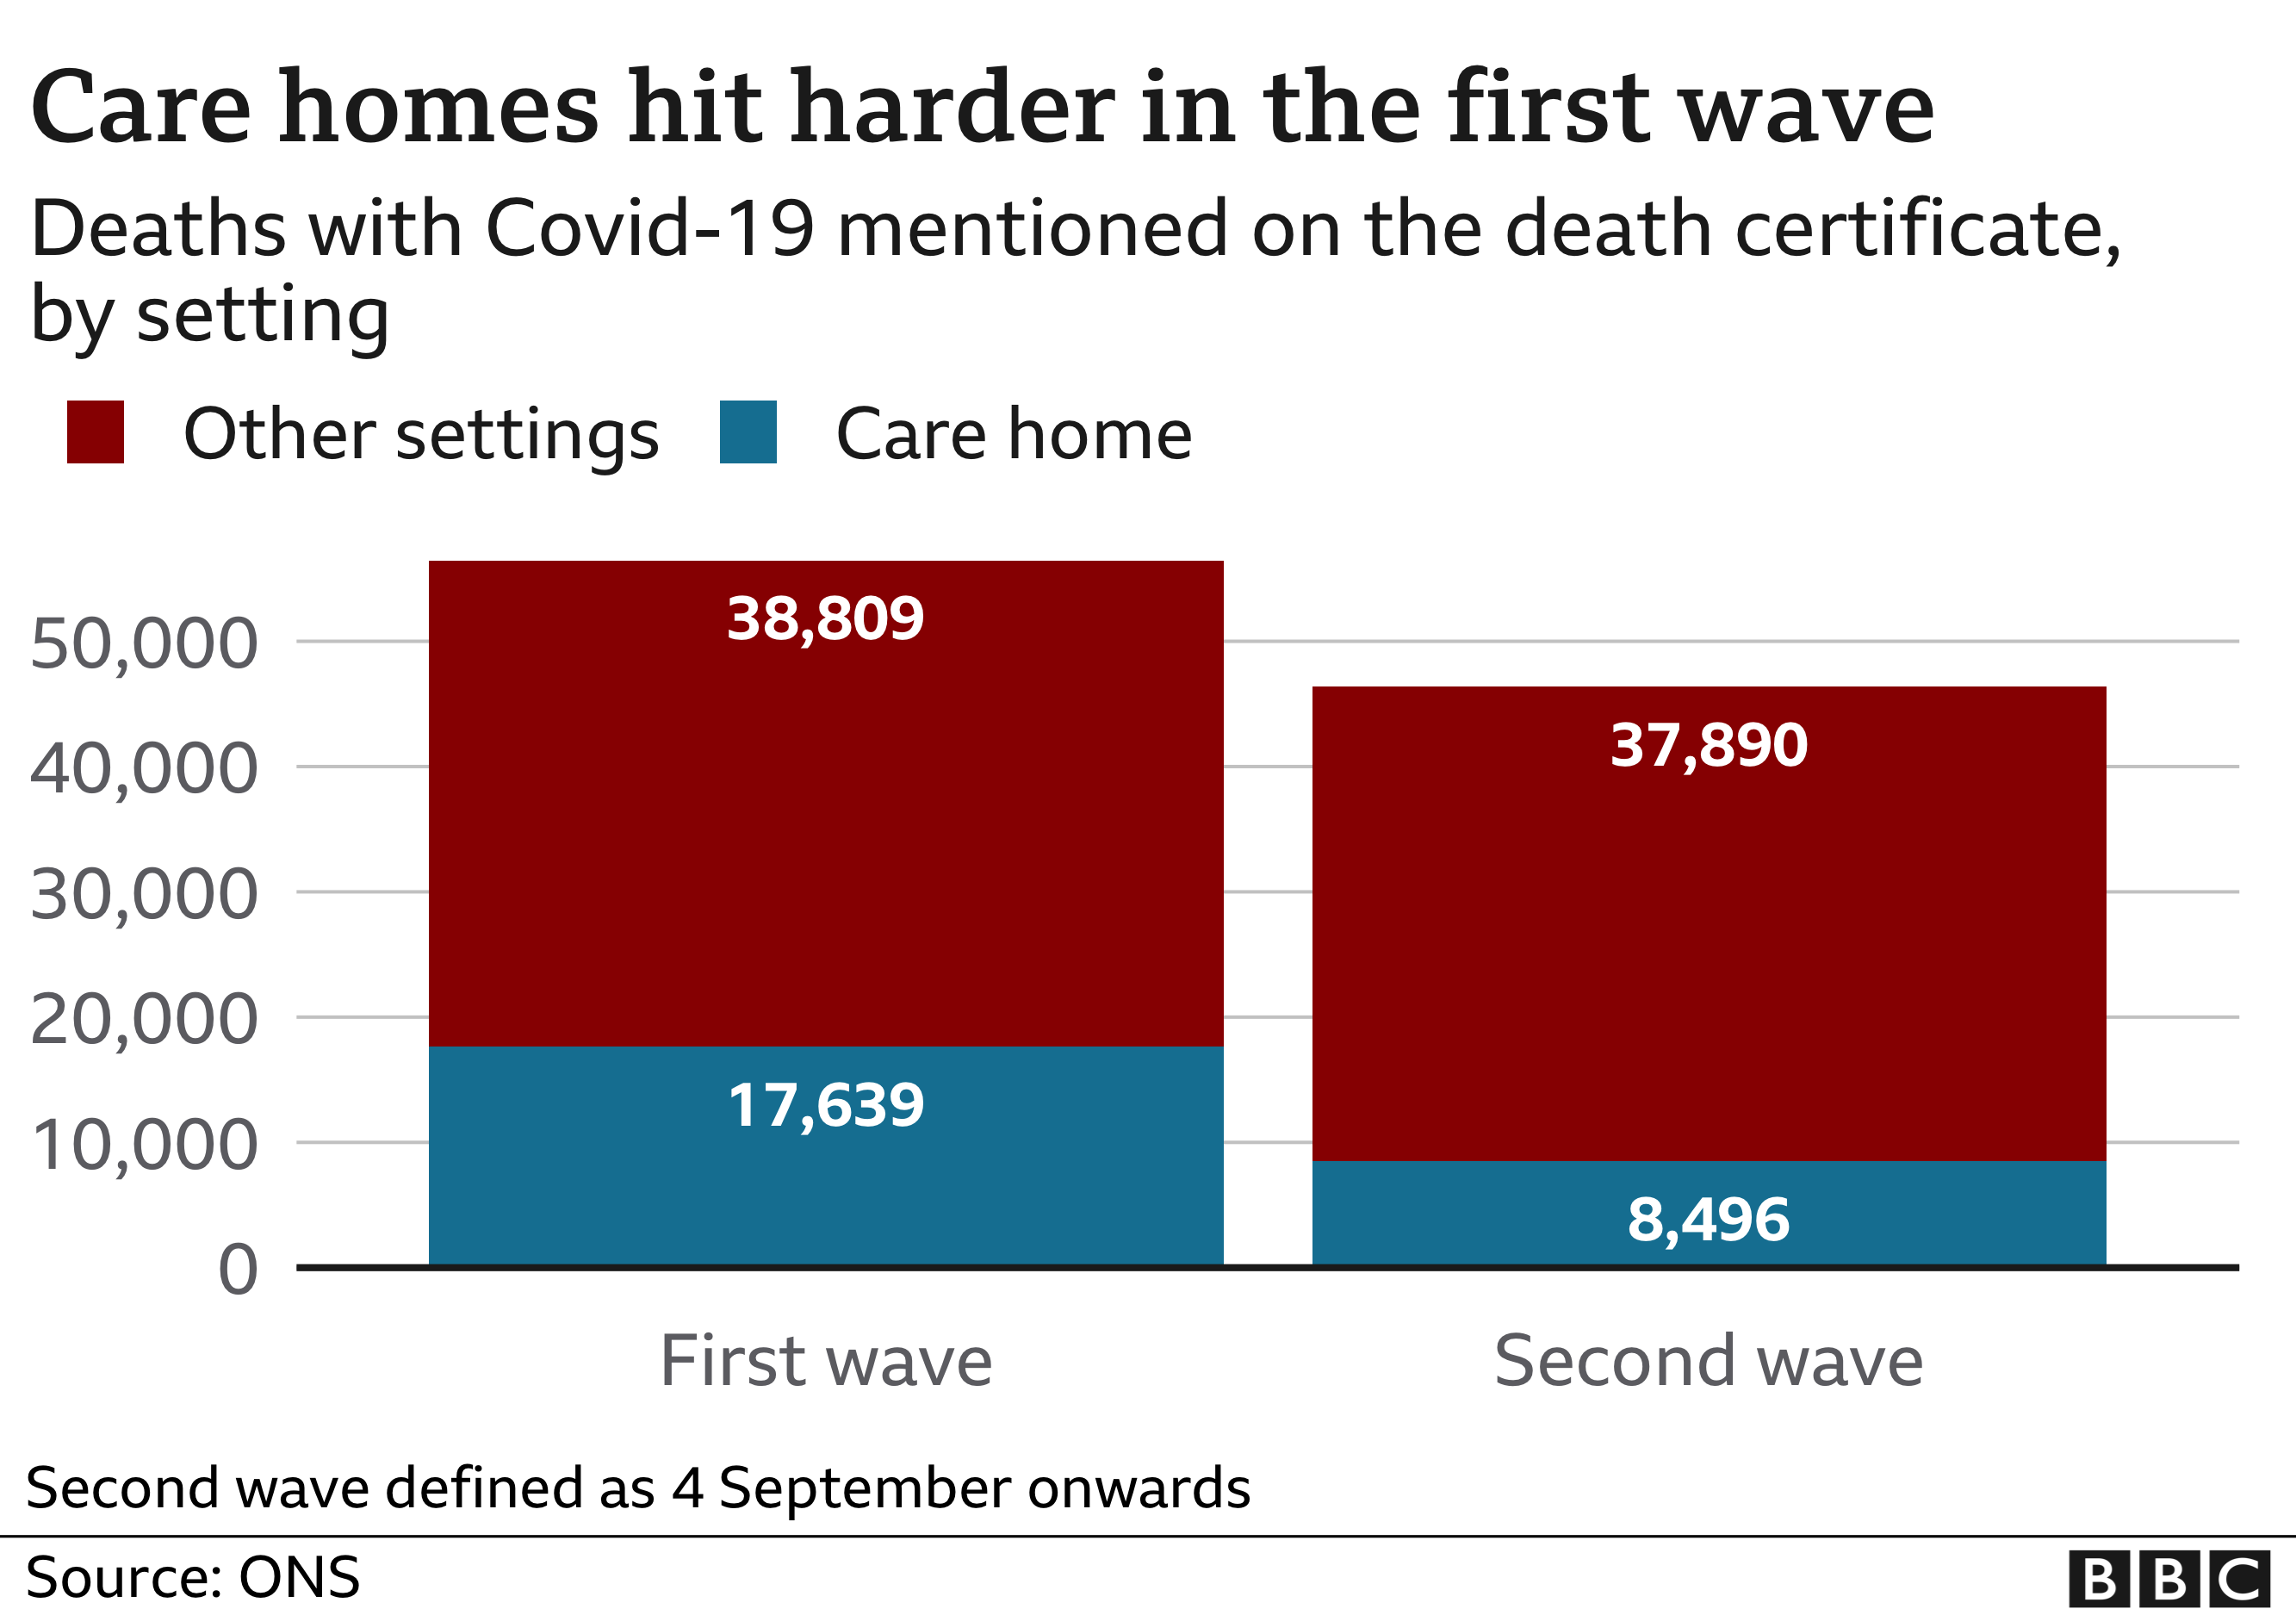 Care homes hit harder in the first wave